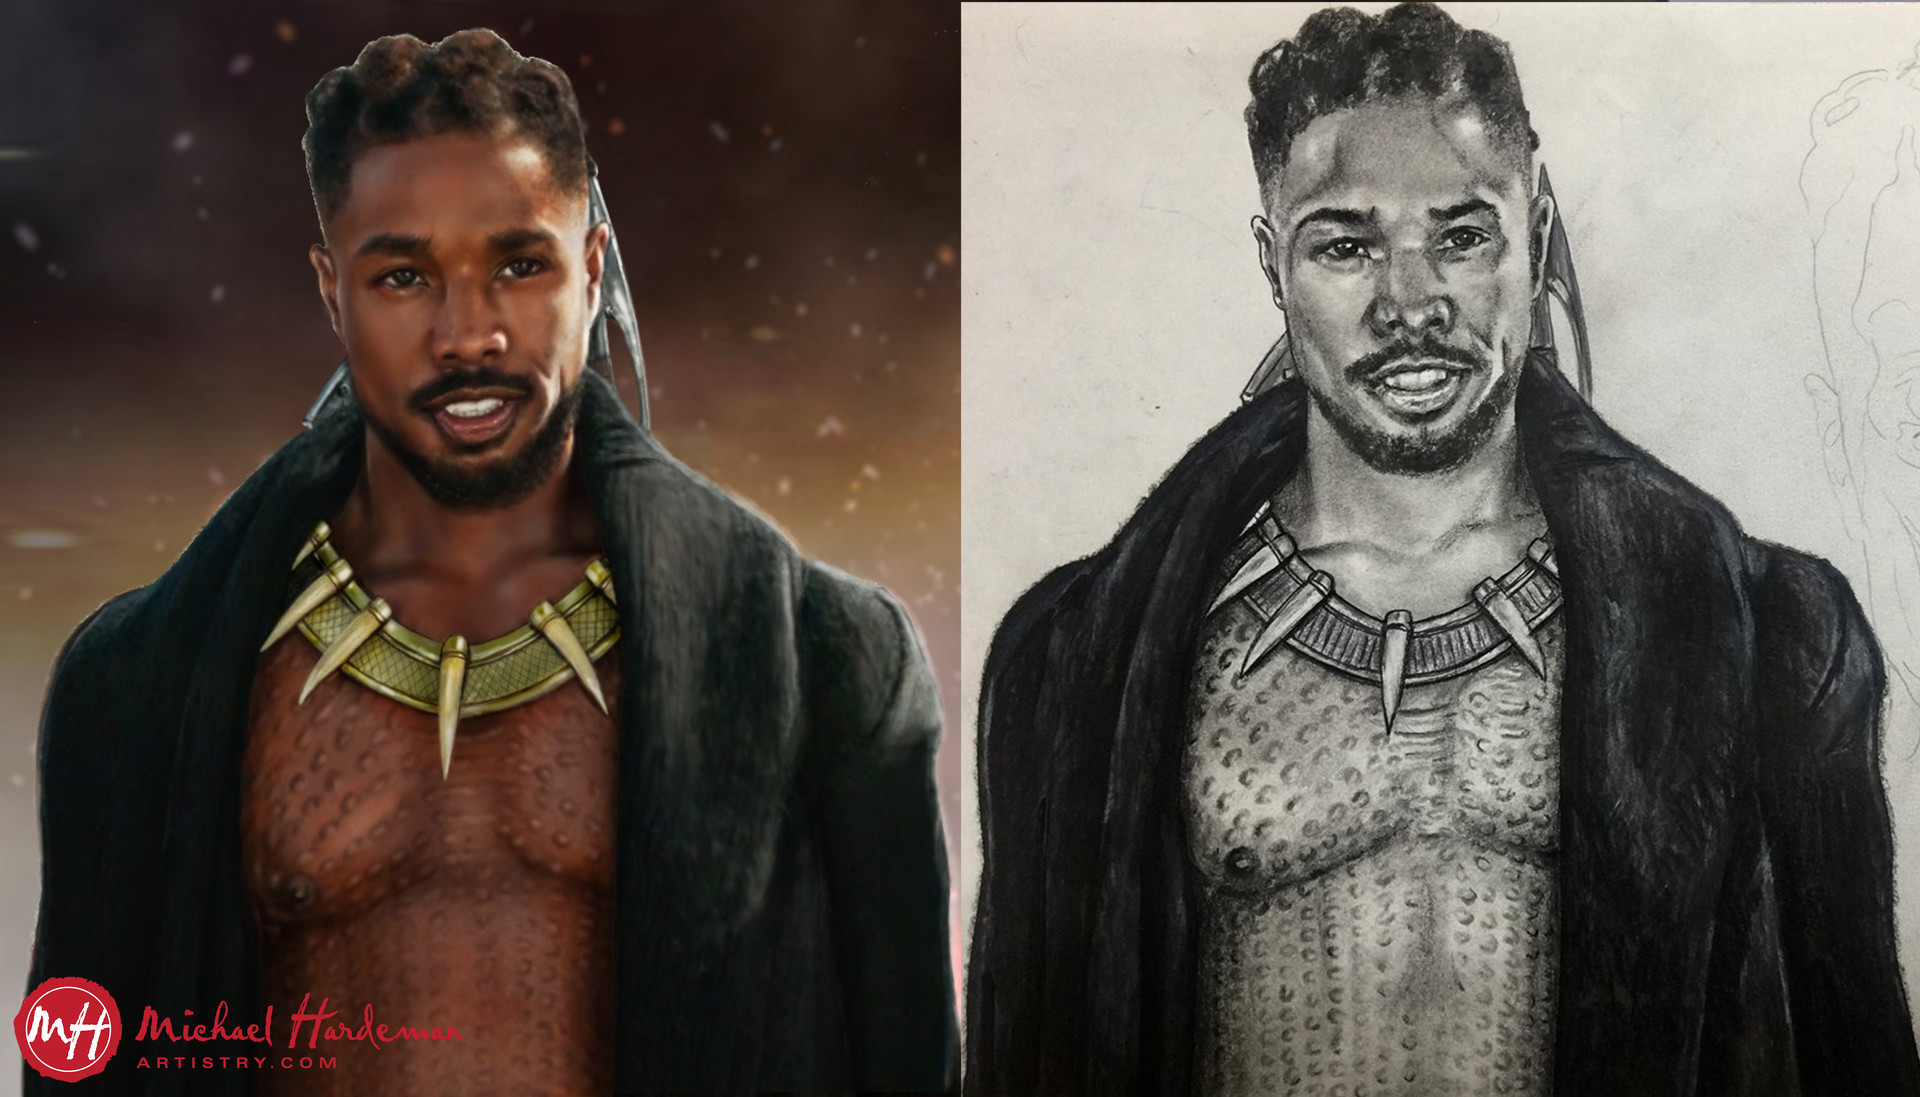 the black panther lives photo eric killmonger erik killmonger. Black Bedroom Furniture Sets. Home Design Ideas